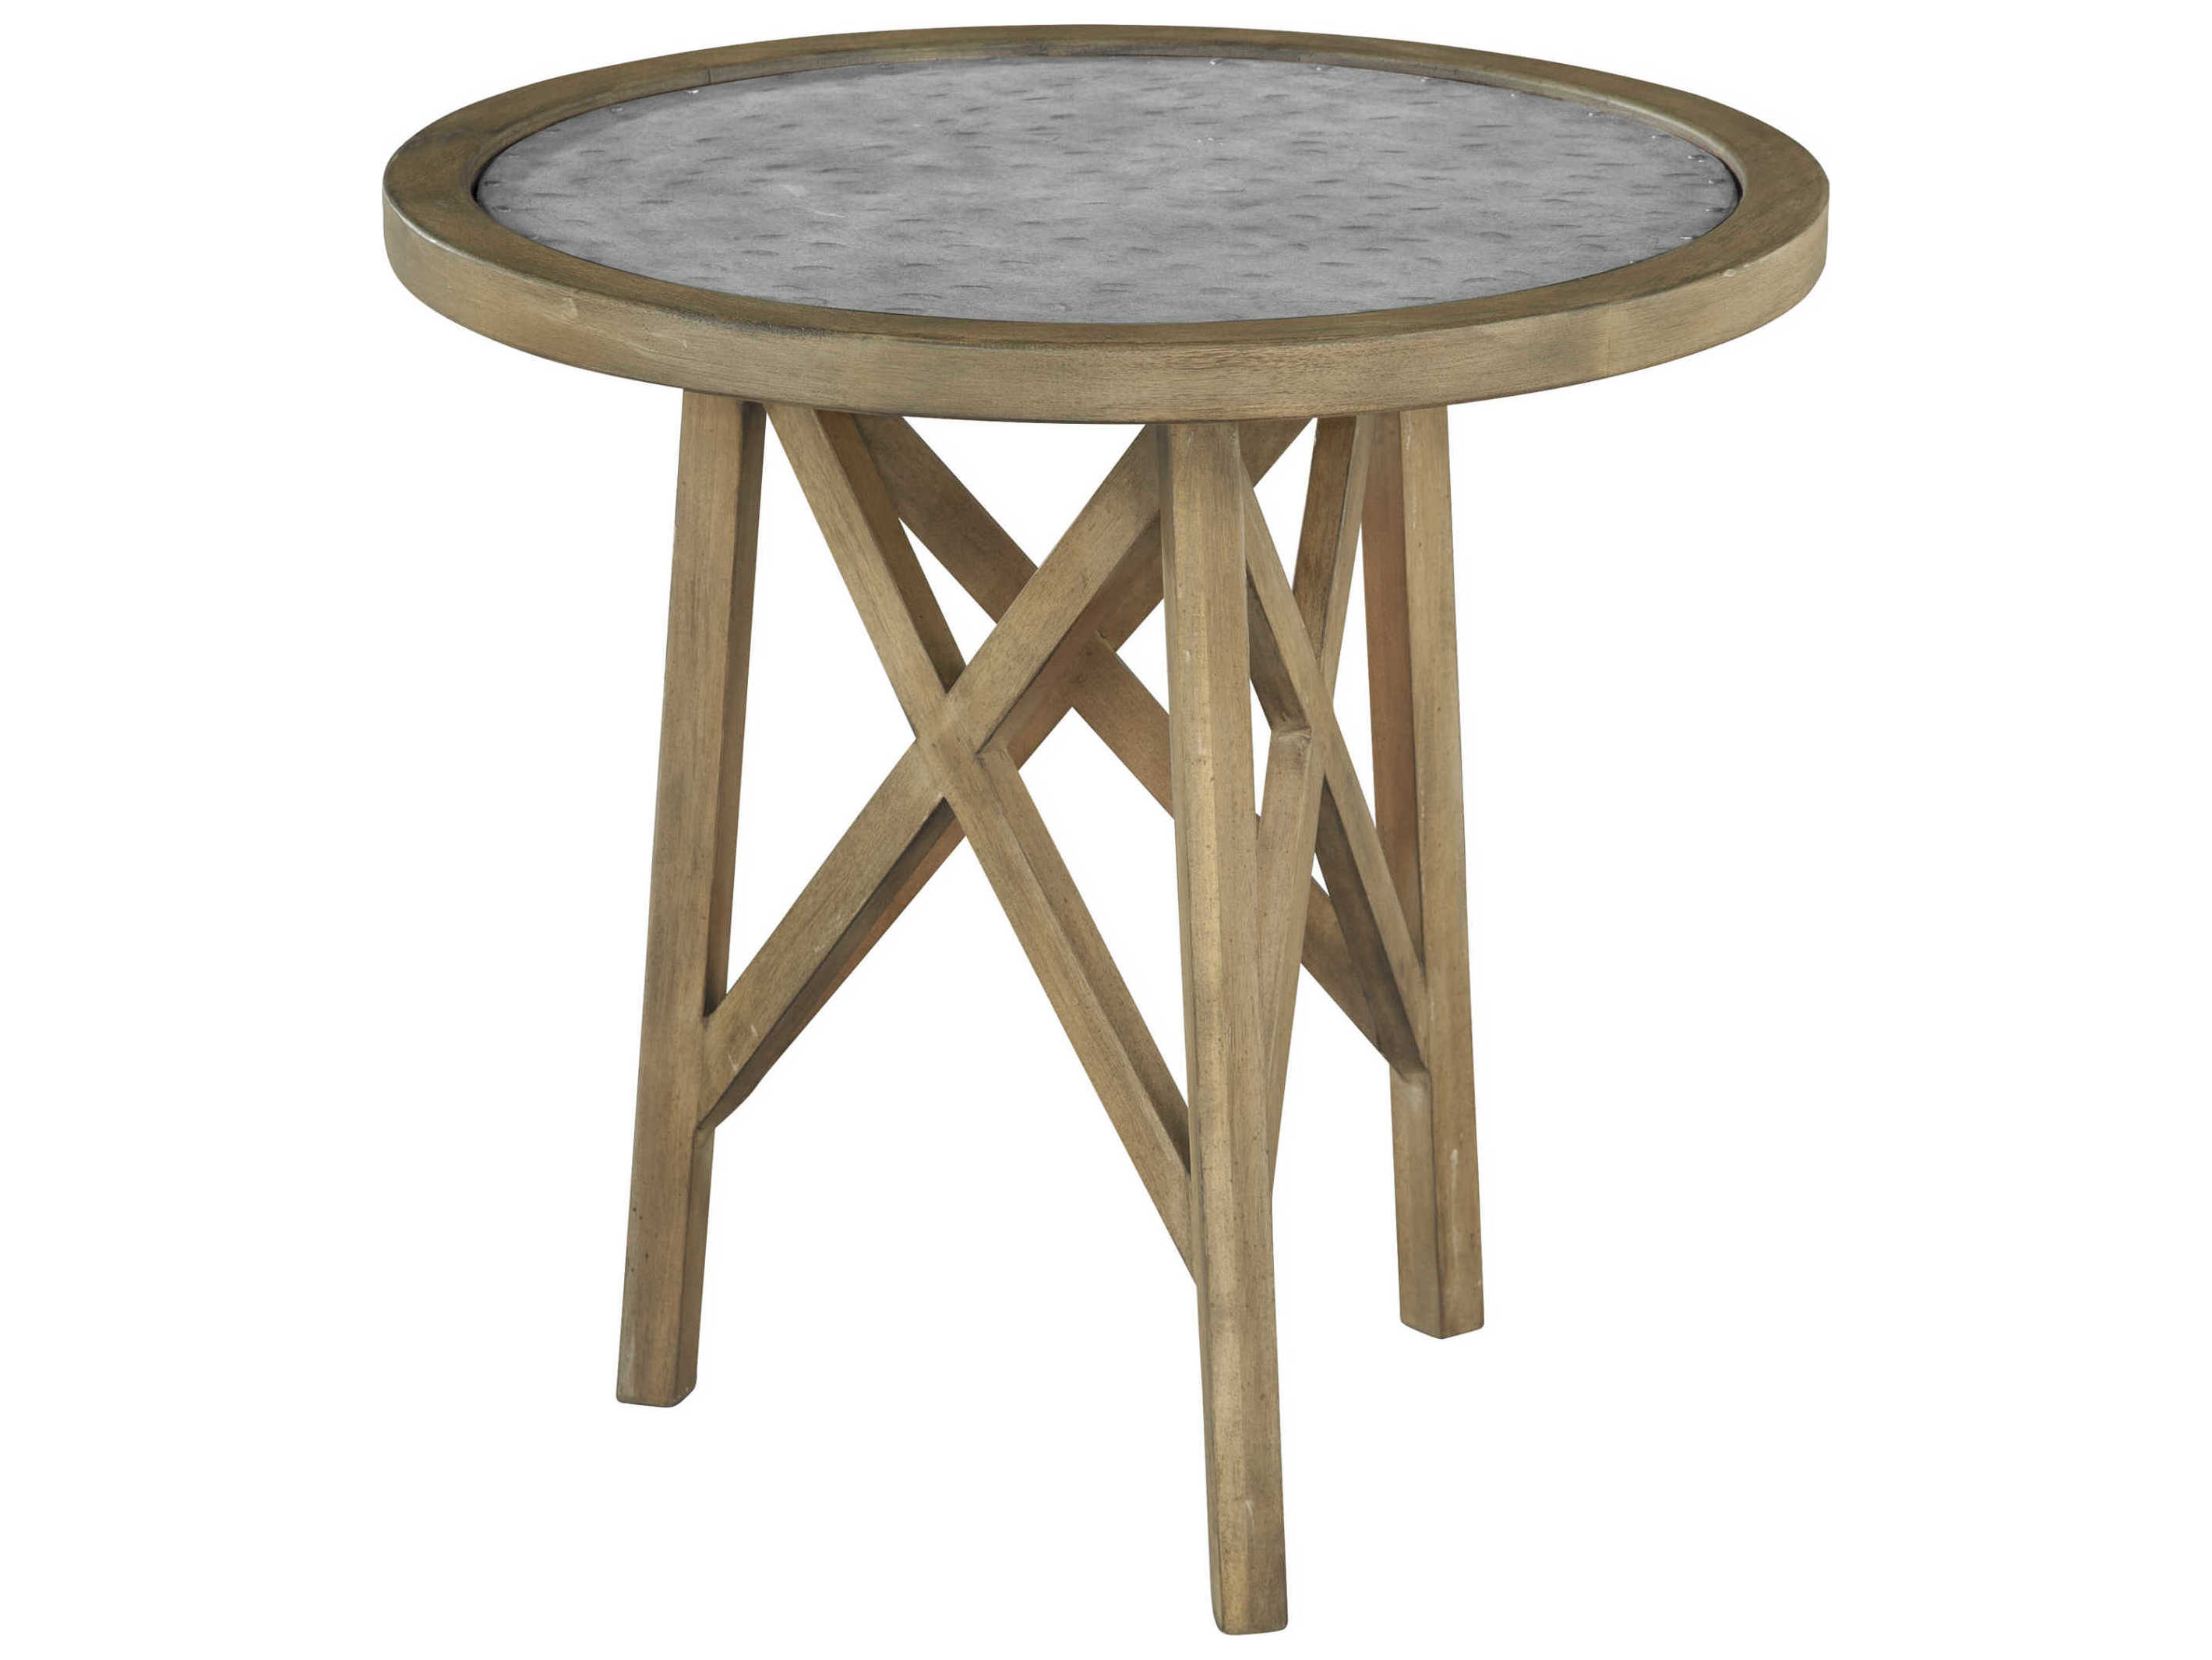 Brilliant Hekman Accents Special Reserve 26 Wide Round End Table Gmtry Best Dining Table And Chair Ideas Images Gmtryco